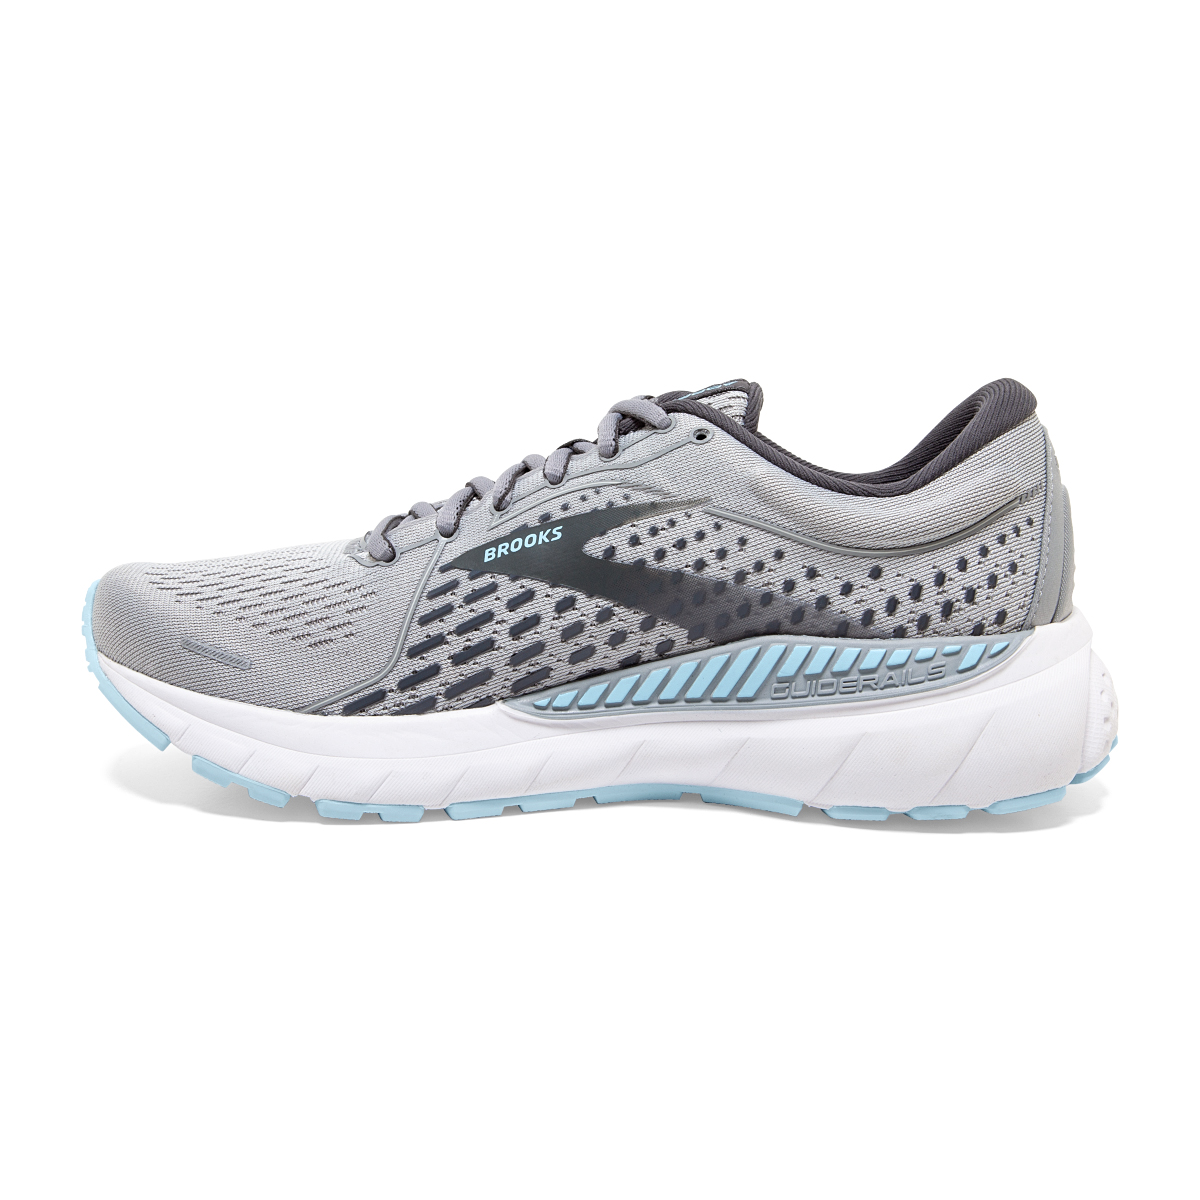 Women's Brooks Adrenaline GTS 21 Running Shoe - Color: Oyster/Alloy/Blue - Size: 5.5 - Width: Regular, Oyster/Alloy/Blue, large, image 2